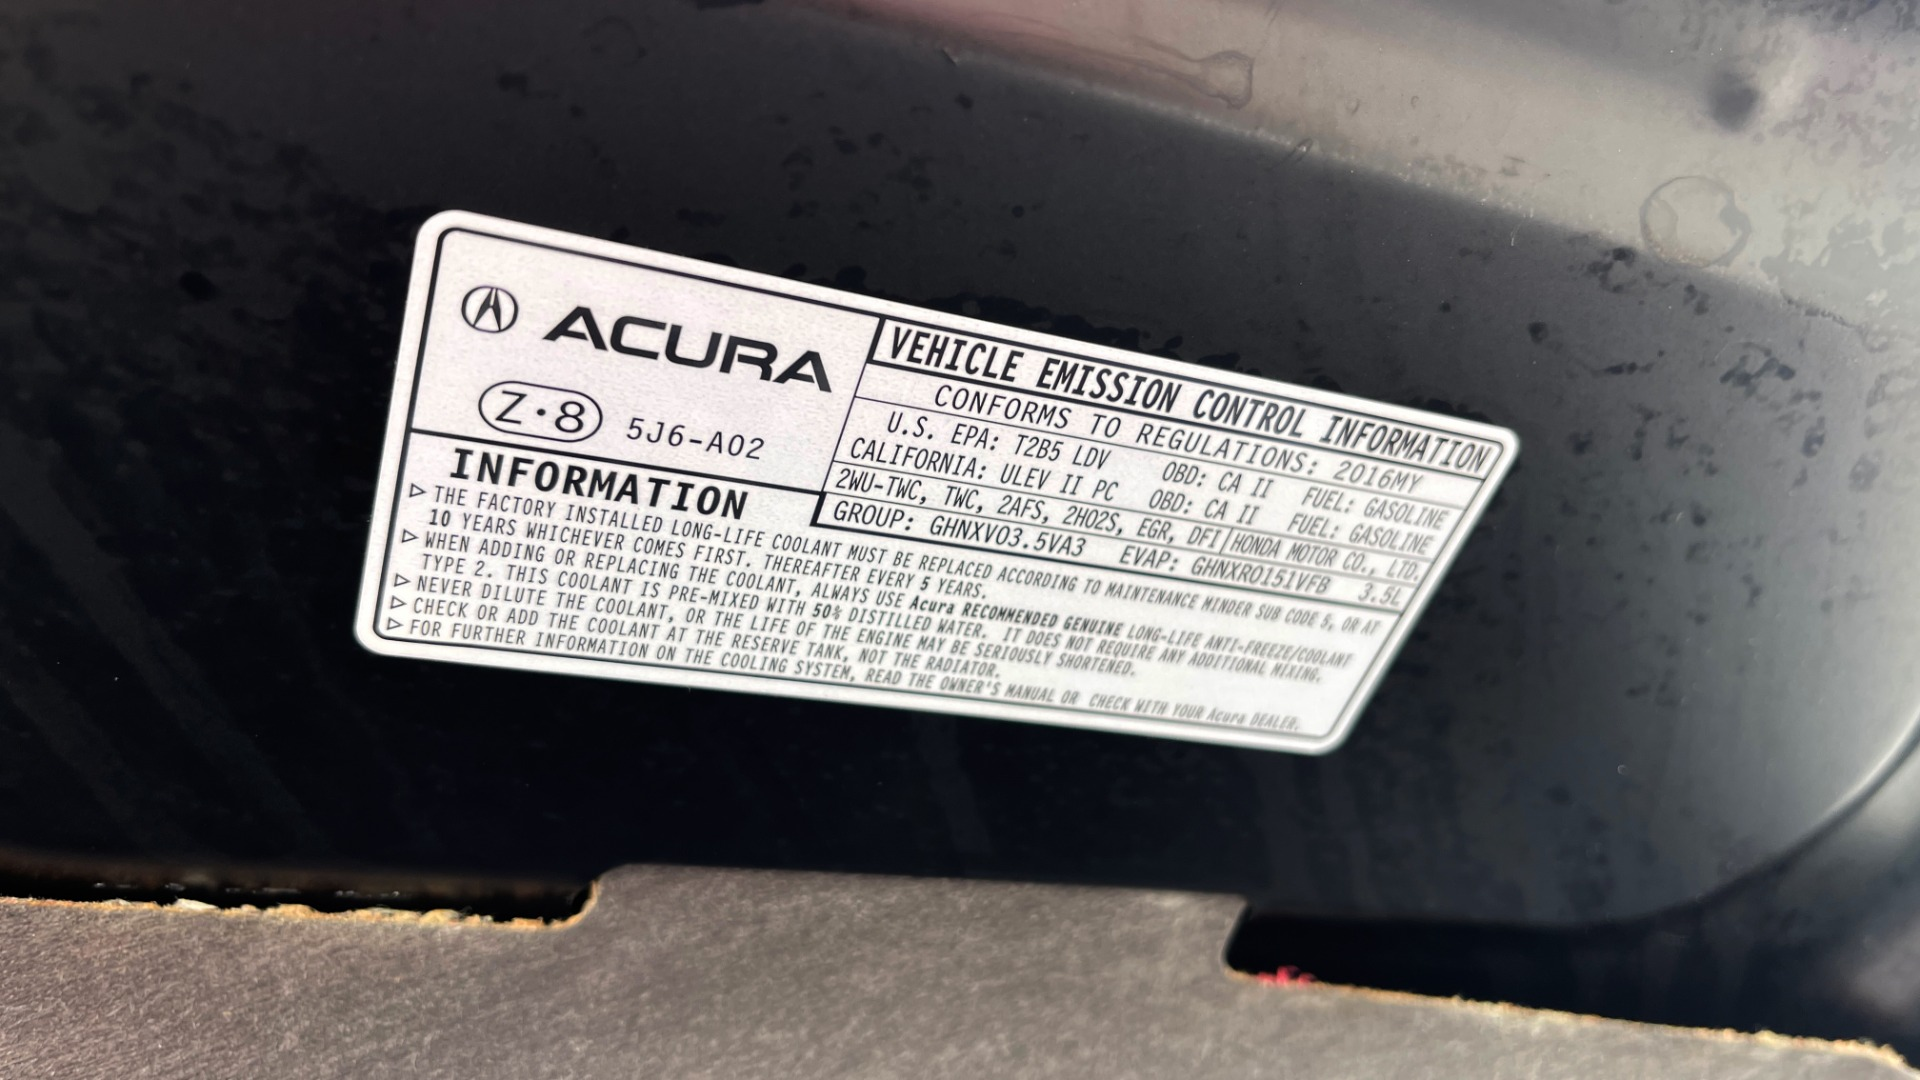 Used 2016 Acura MDX 3.5L V6 / AUTO / LEATHER / NAV / SUNROOF / 3-ROW / REARVIEW for sale $21,900 at Formula Imports in Charlotte NC 28227 12